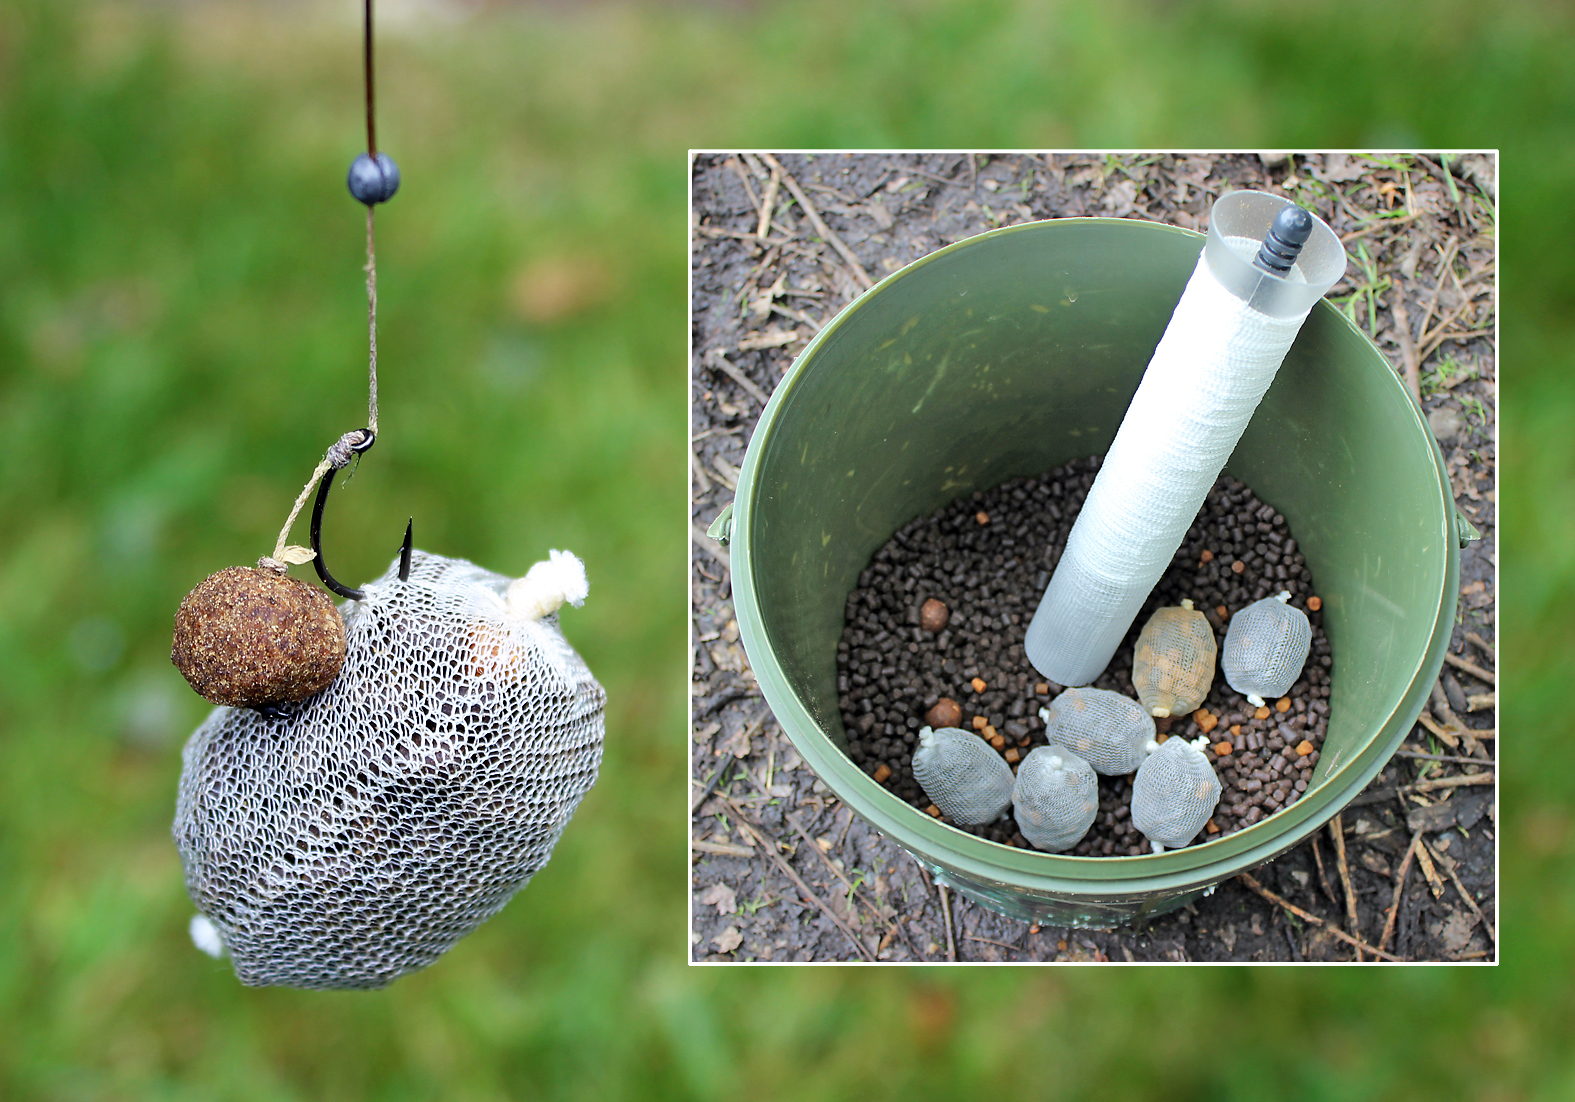 Hair-rigged pellet, with a pva bag nicked on the hook